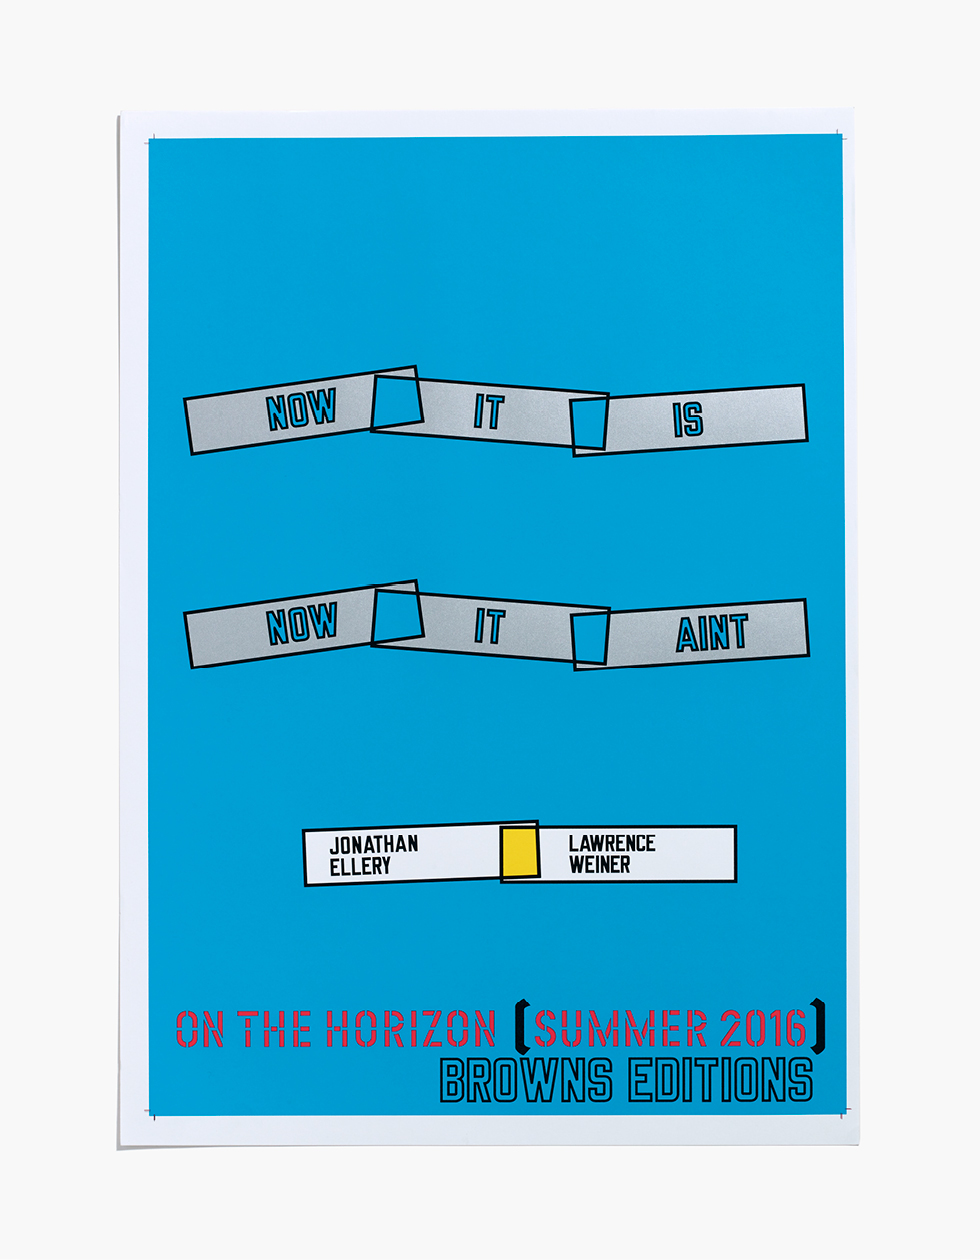 Jonathan Ellery, Jonathan Ellery Art, Jonathan Ellery Artist, Jonathan Ellery Work, Jonathan Ellery Book, Jonathan Ellery Exhibition, Jonathan Ellery Performance, onathan Ellery Lawrence Weiner Now It Is Now It Aint